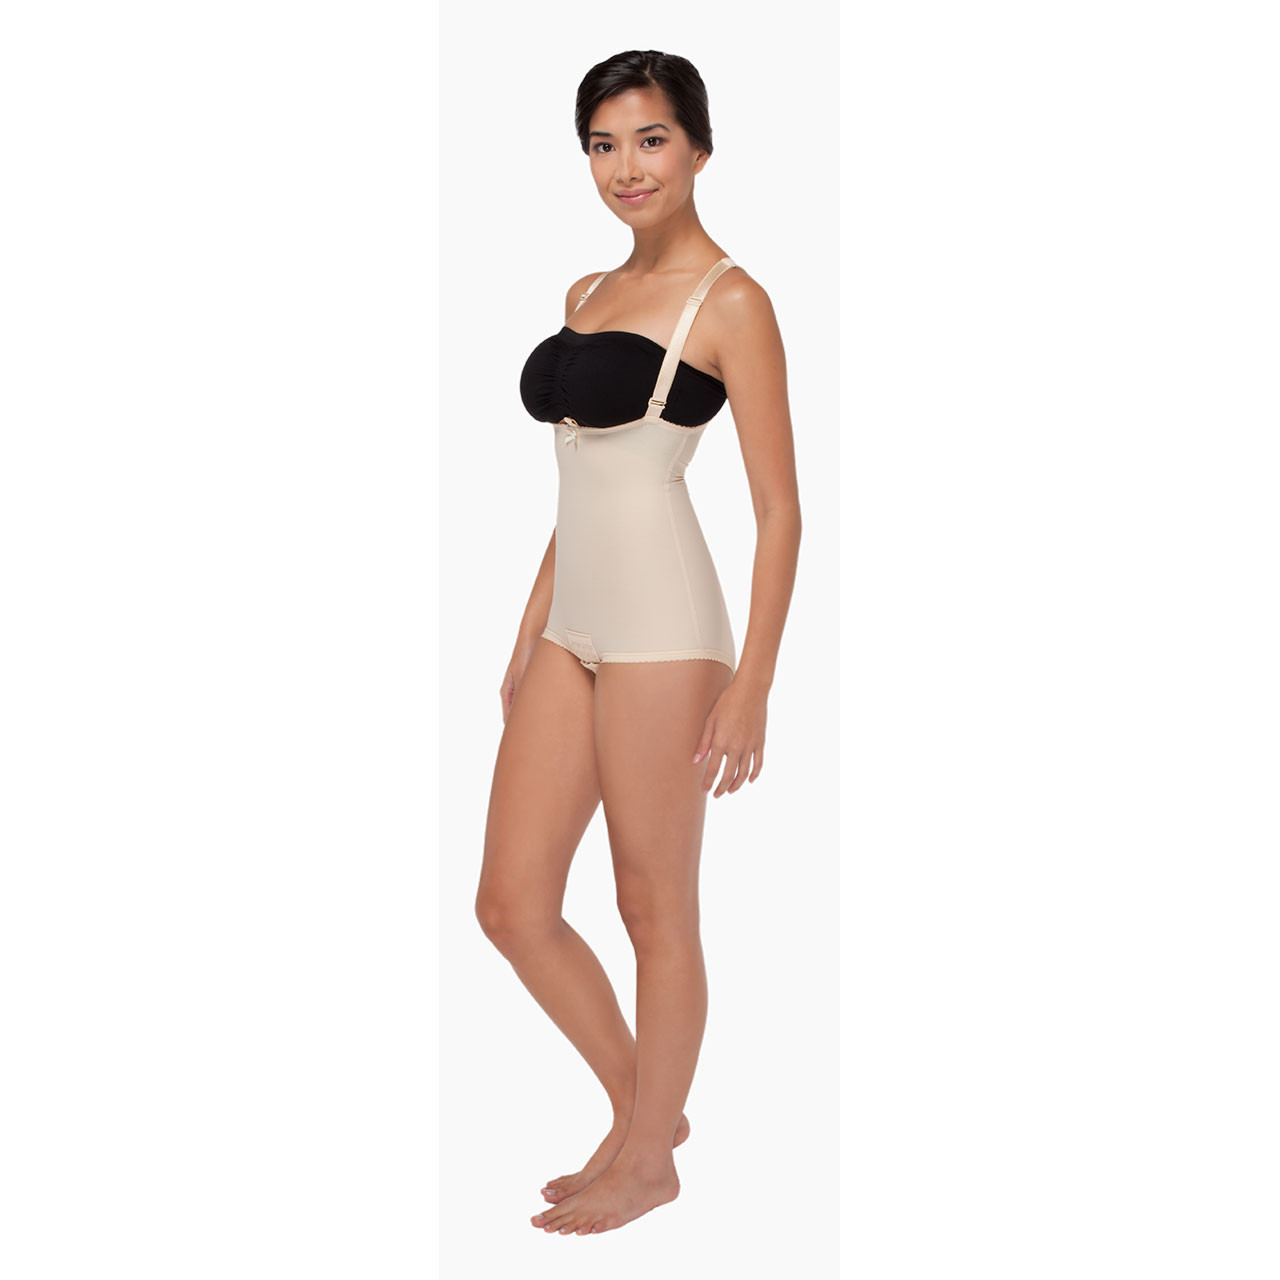 93b90affc764e Panty-Length Compression Girdle with Suspenders - Zipperless